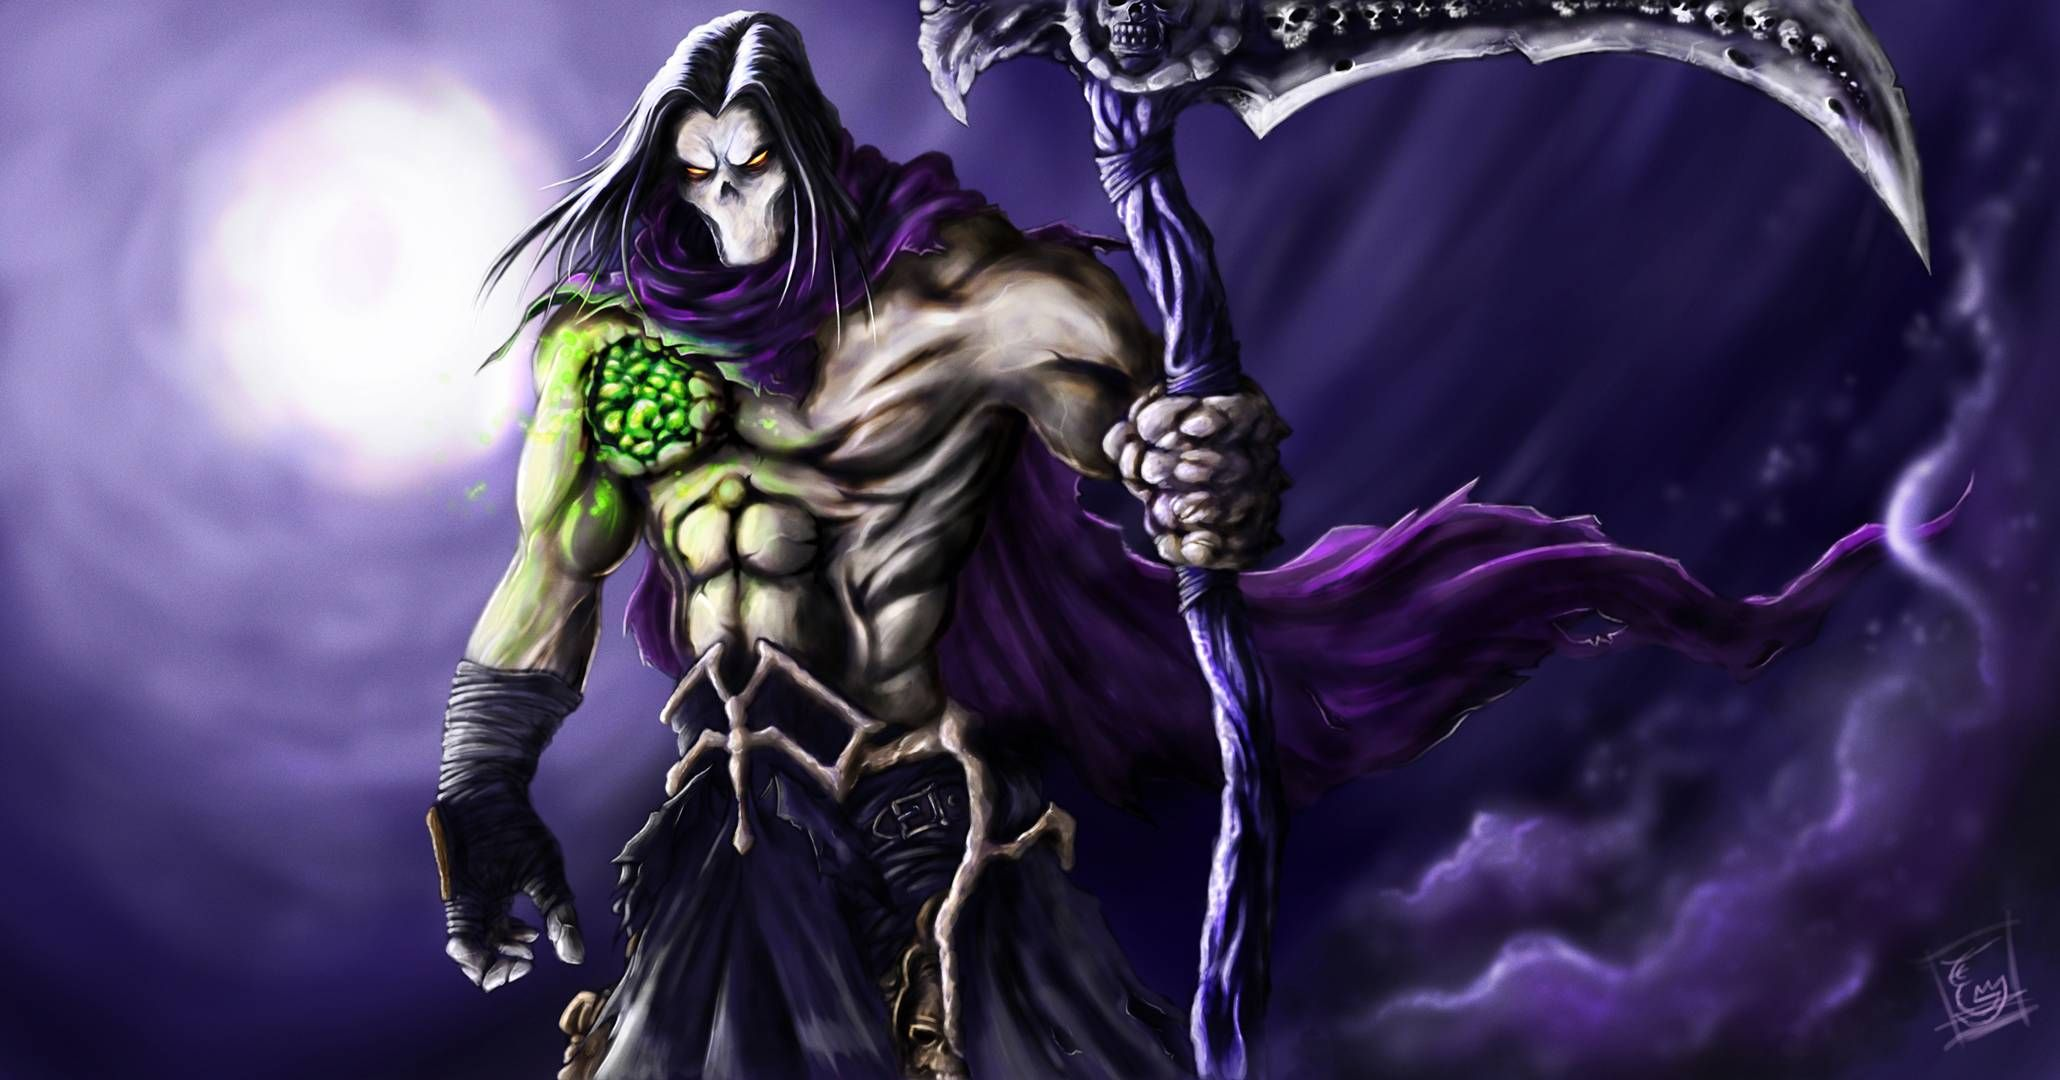 Darksiders Ii Deathinitive Edition Endless Pit Glitch Youtube